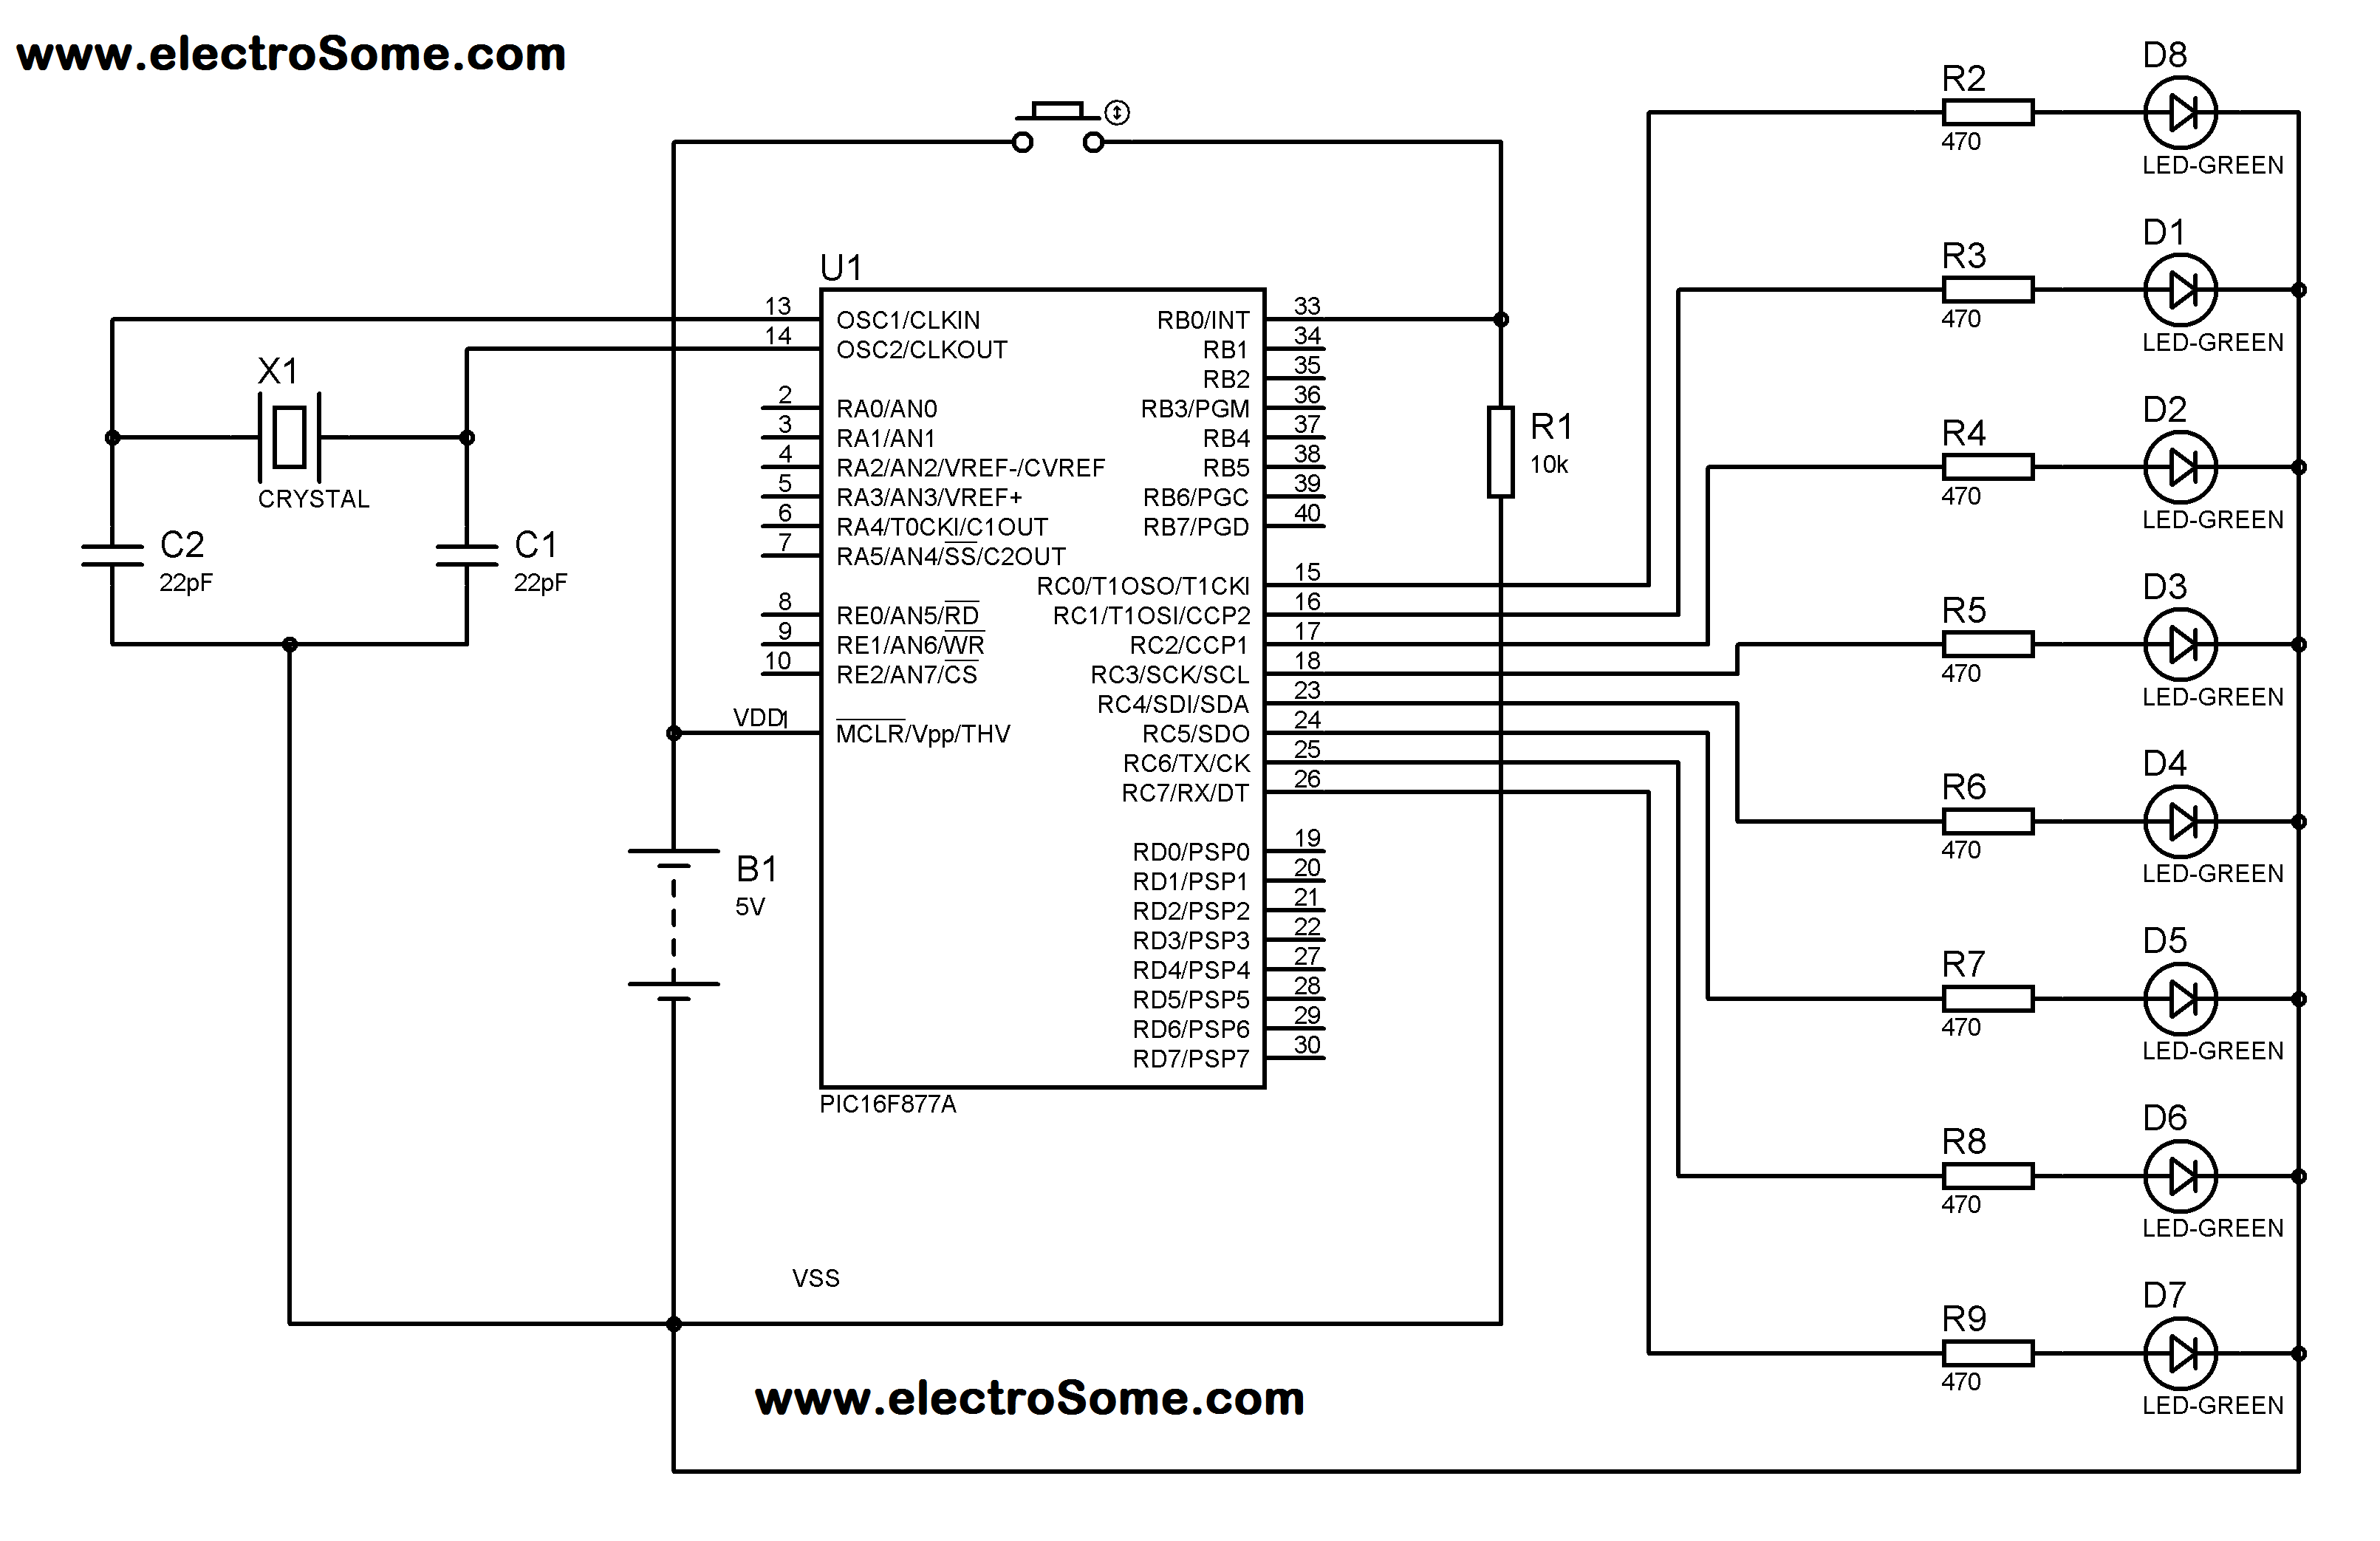 Pin Diagram Hd